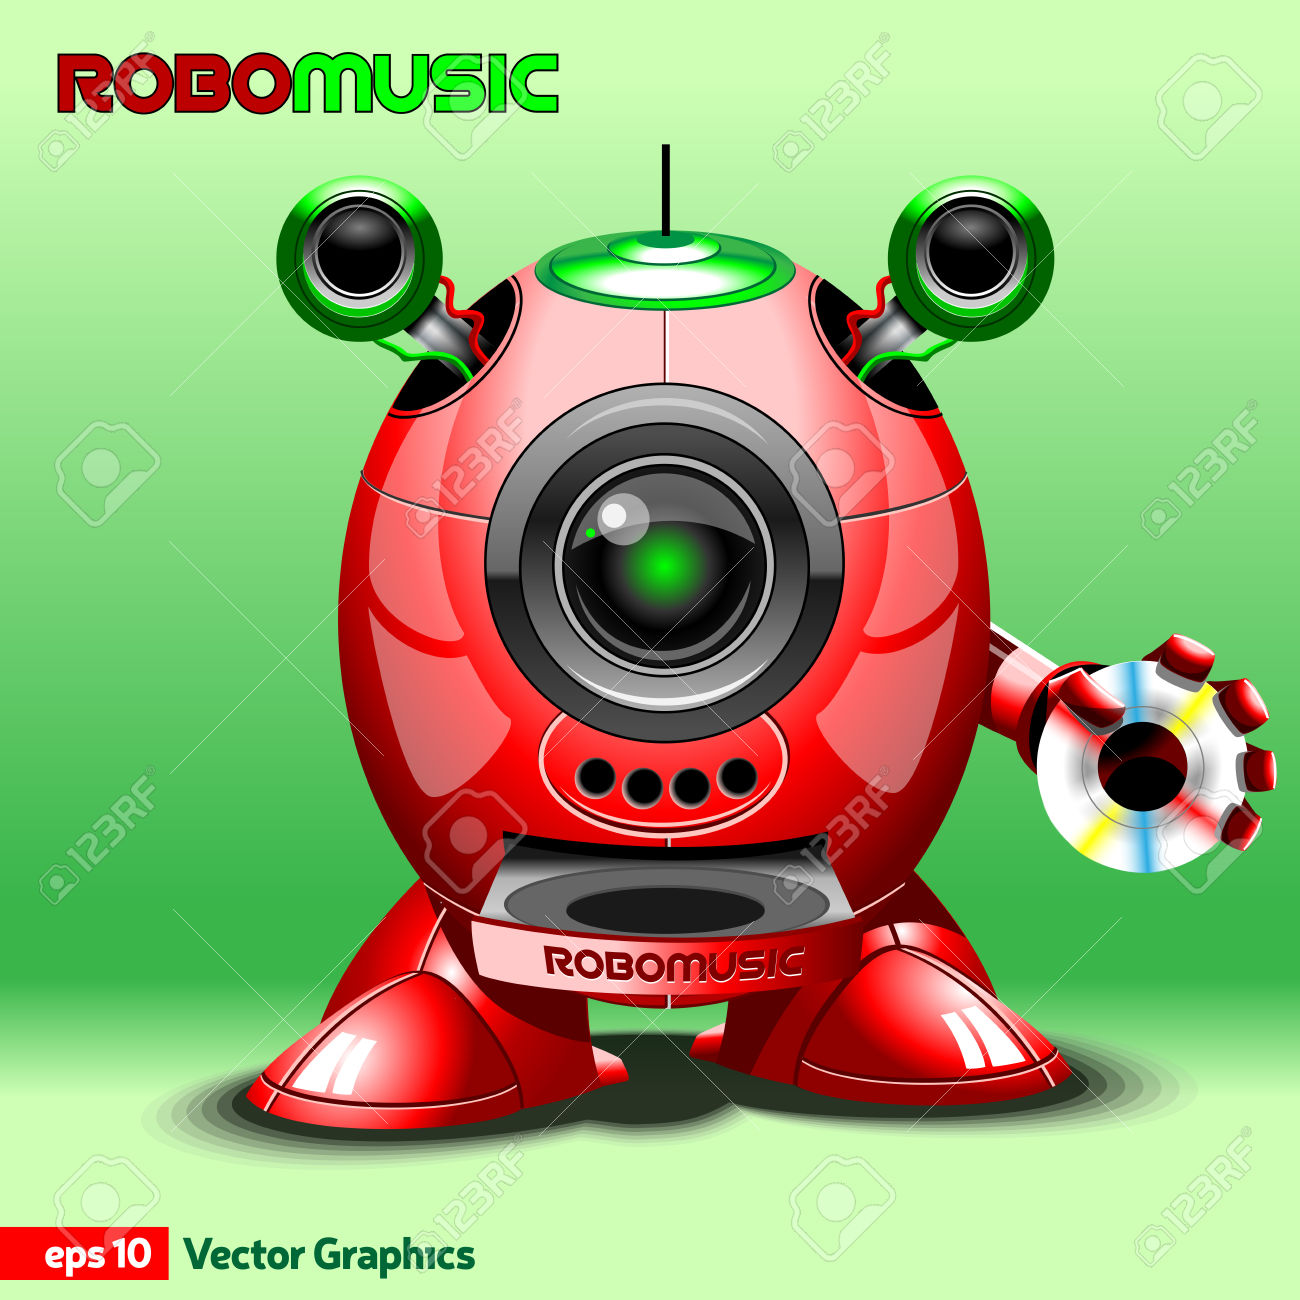 Music Robot With CD Rom, Loudspeakers And Antenna. Red Robot.